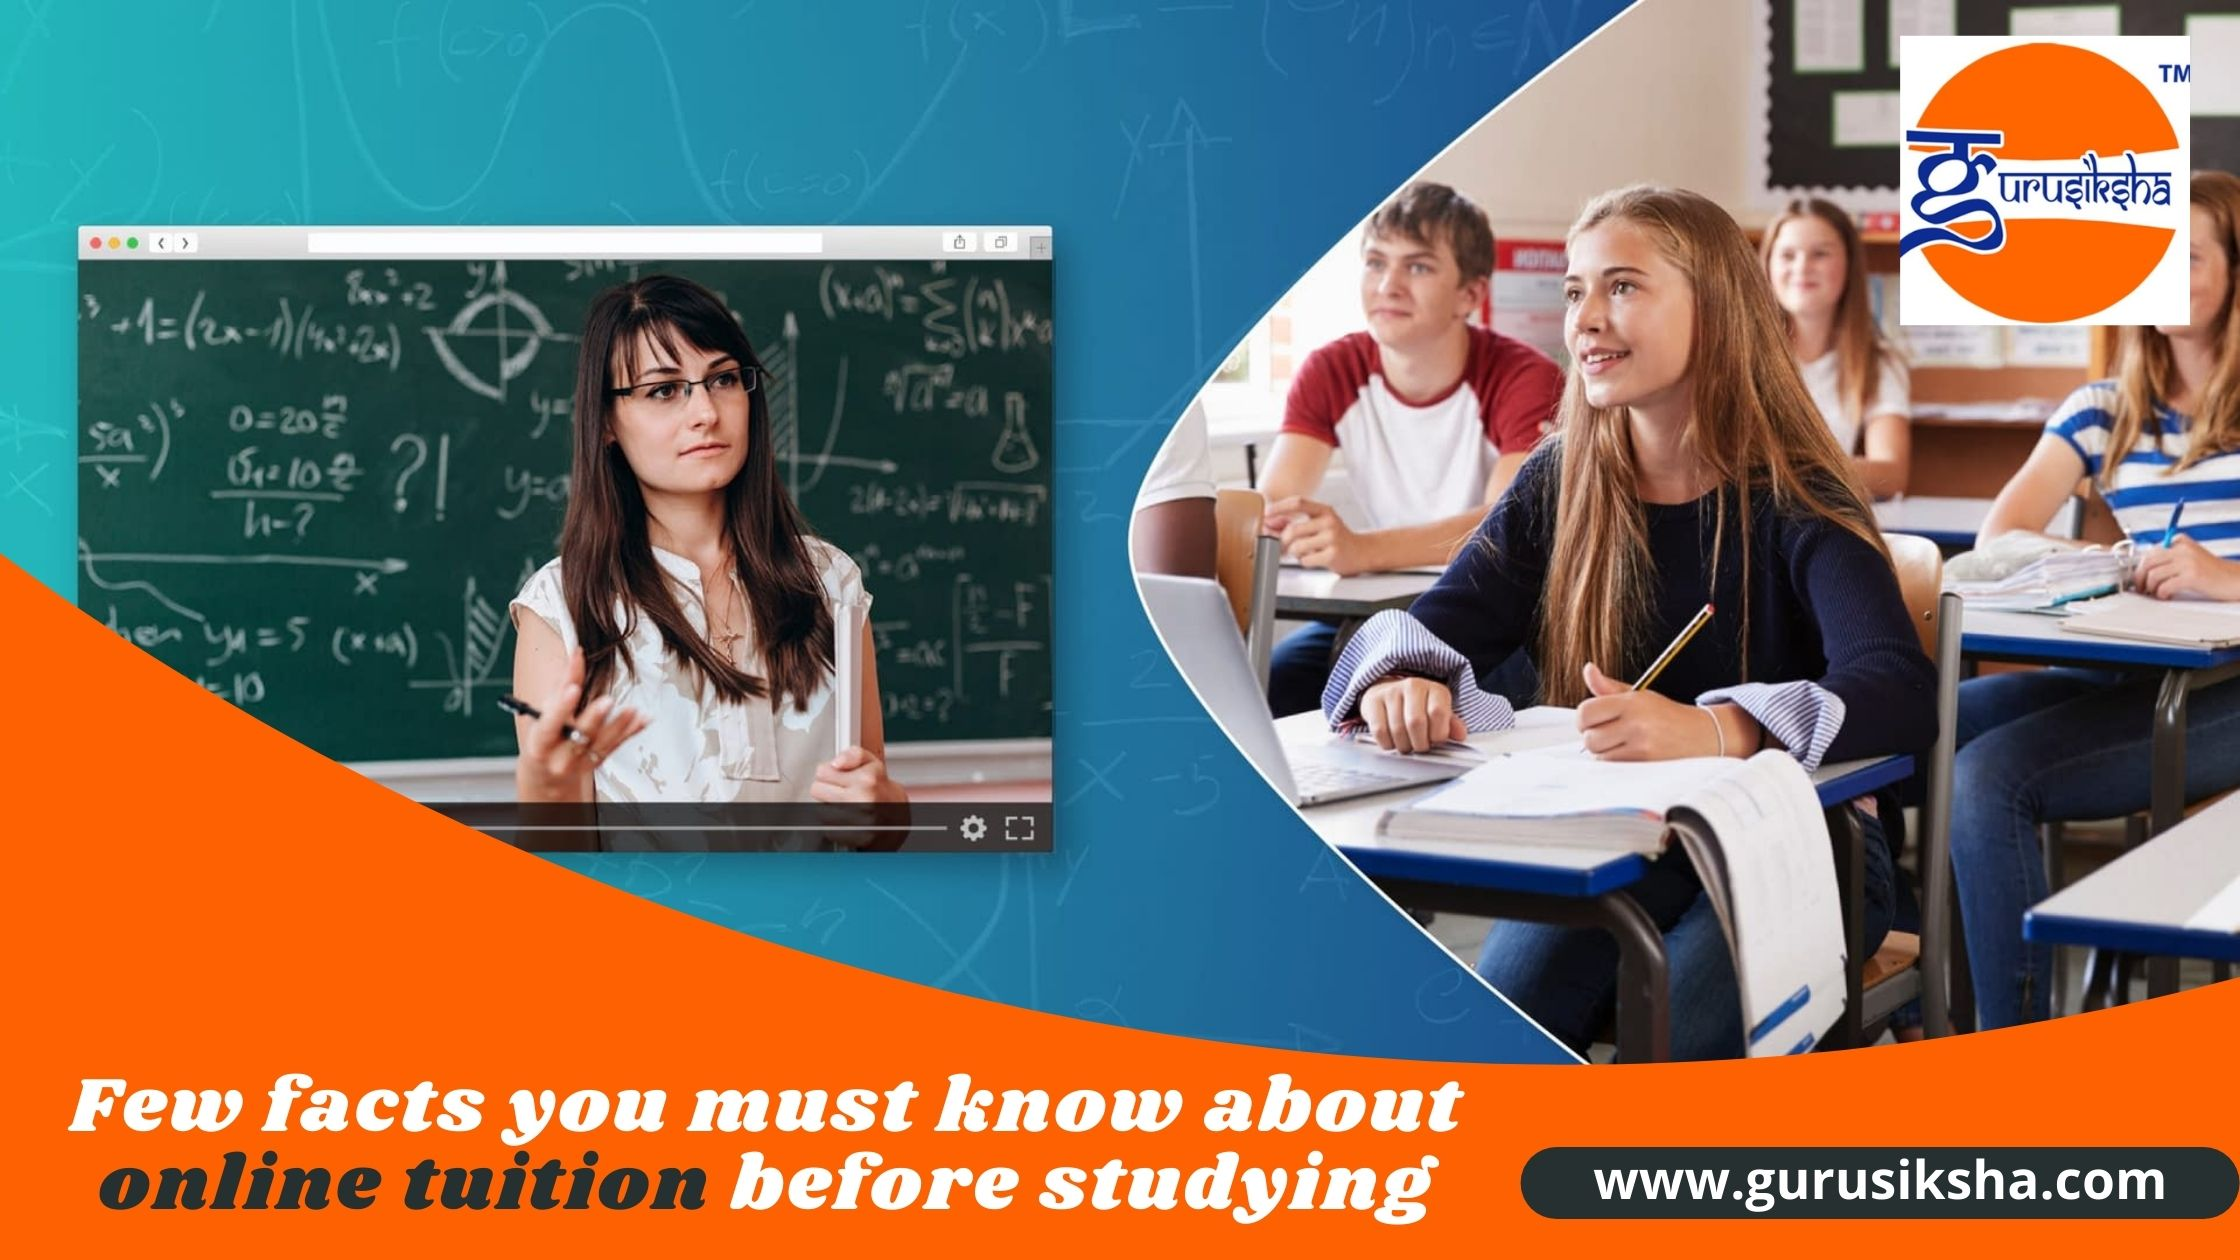 Few facts you must know about online tuition before studying